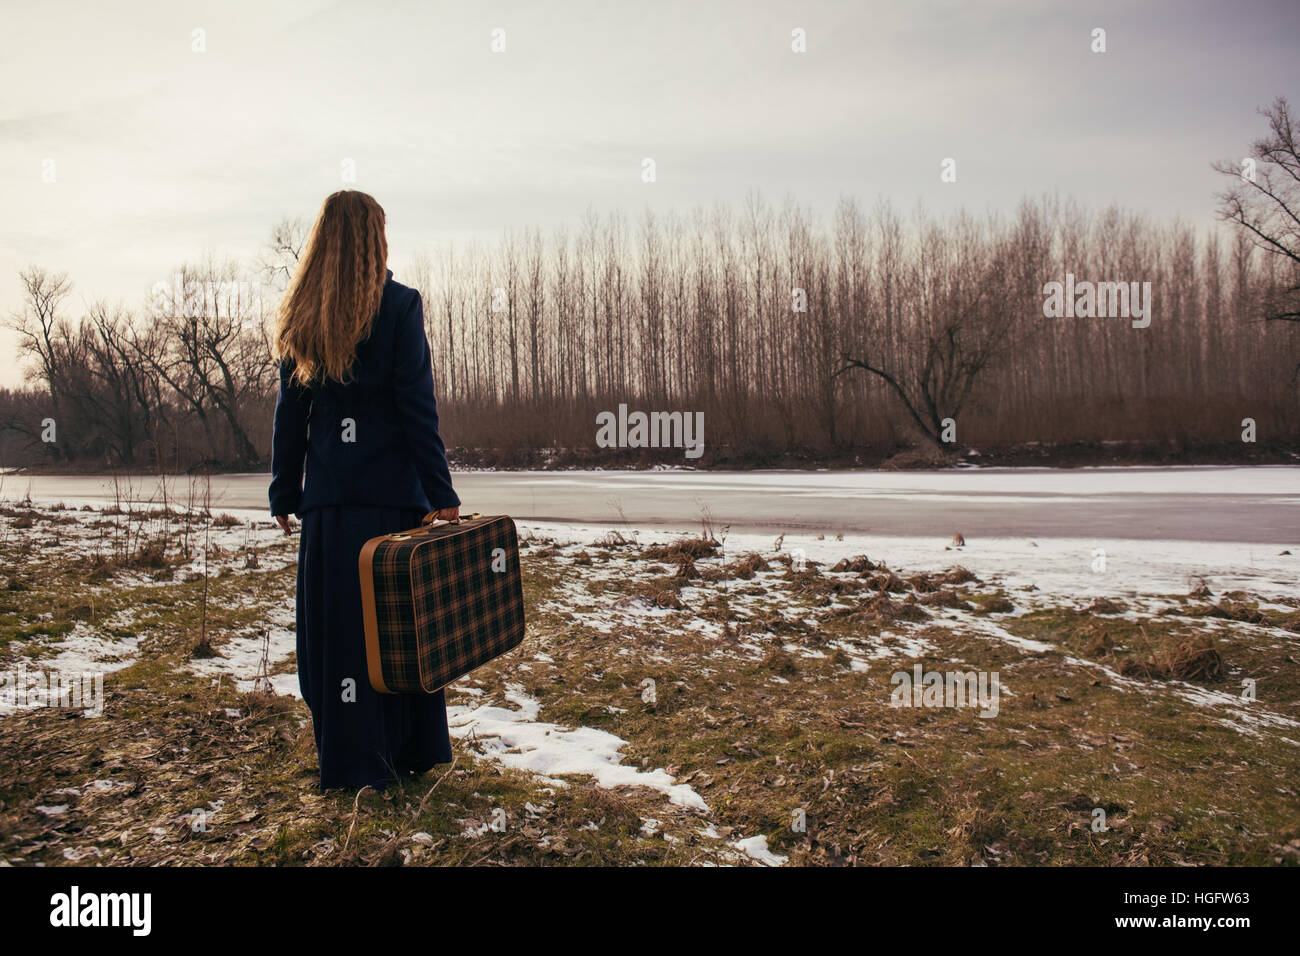 Woman is traveling in winter. - Stock Image